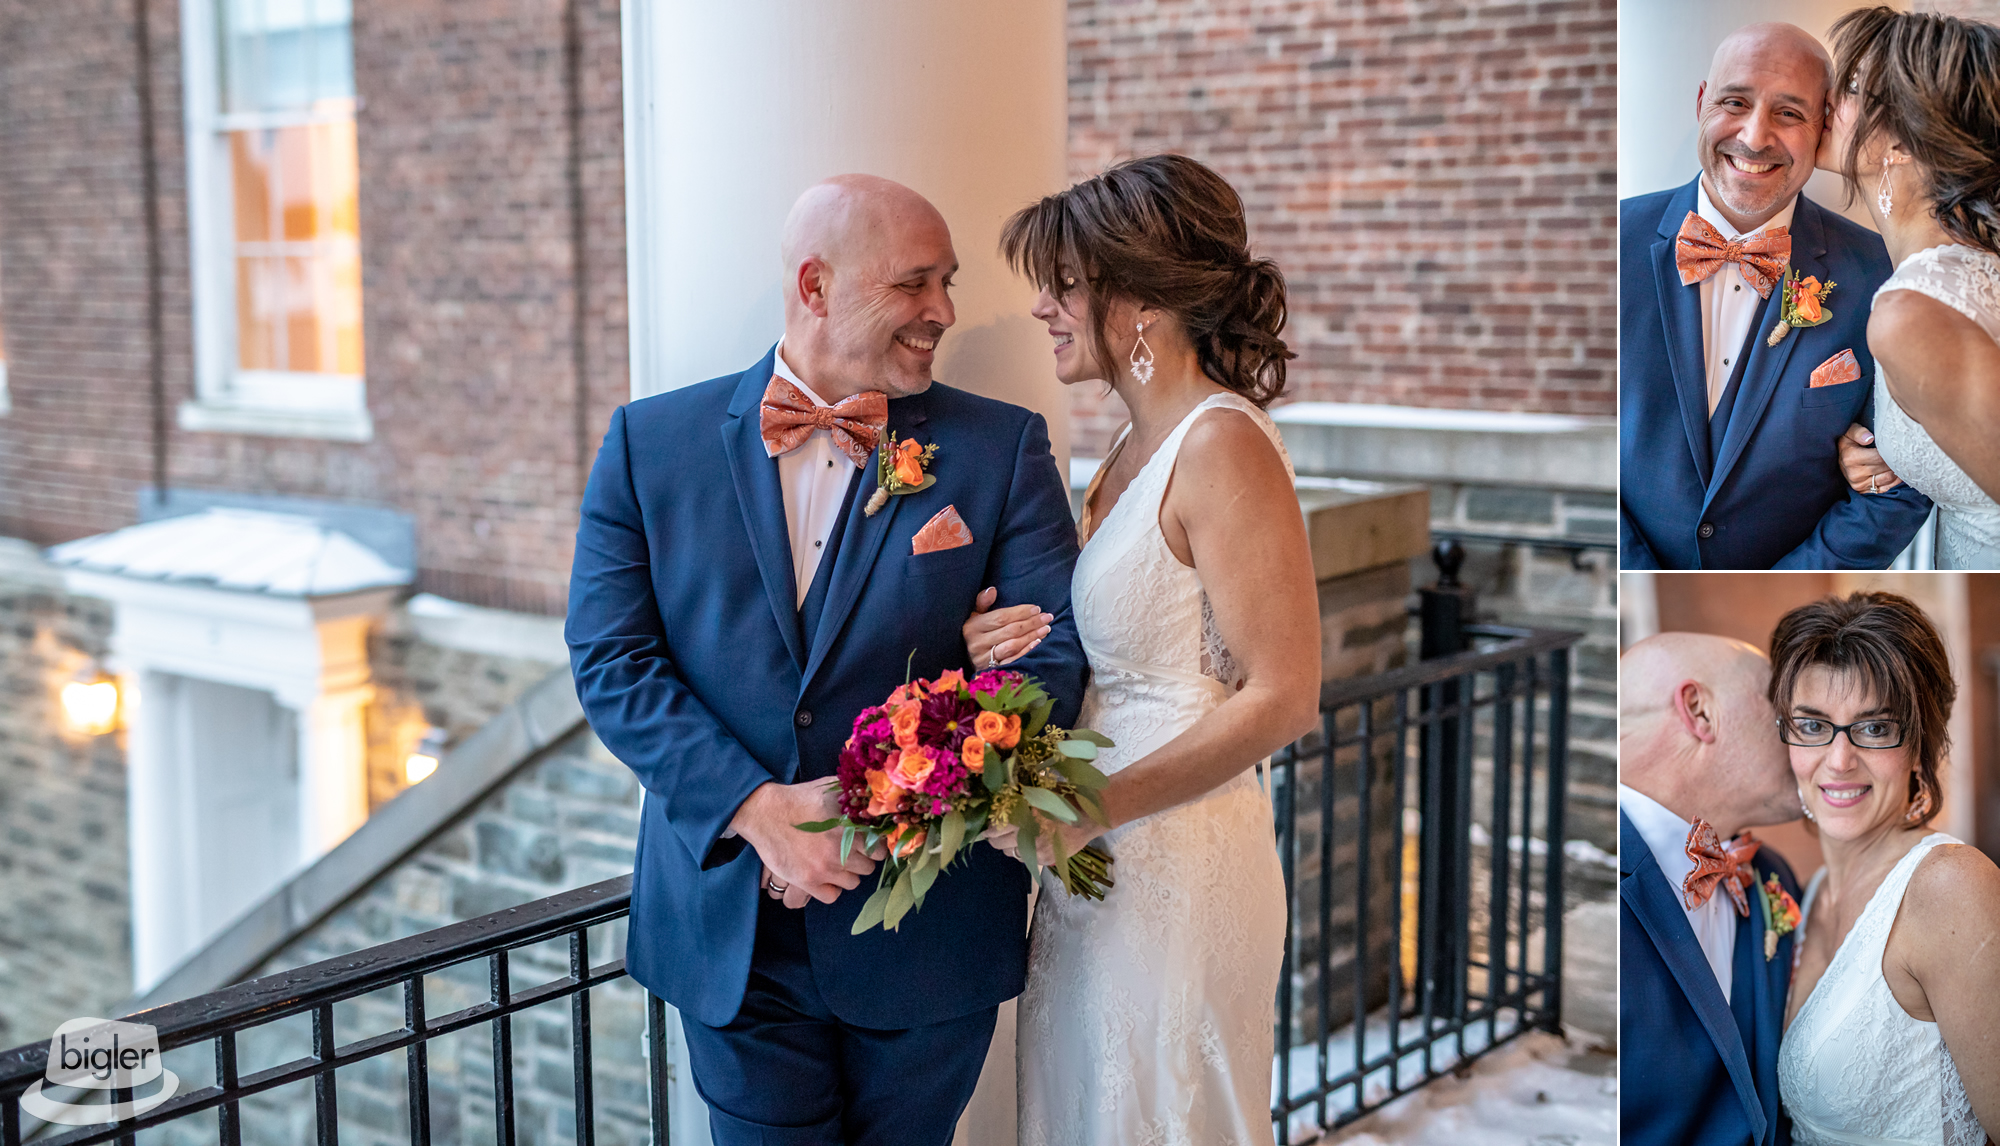 20181123_-_22_-_Melissa_and_Richard_Otesaga_Wedding_Photos